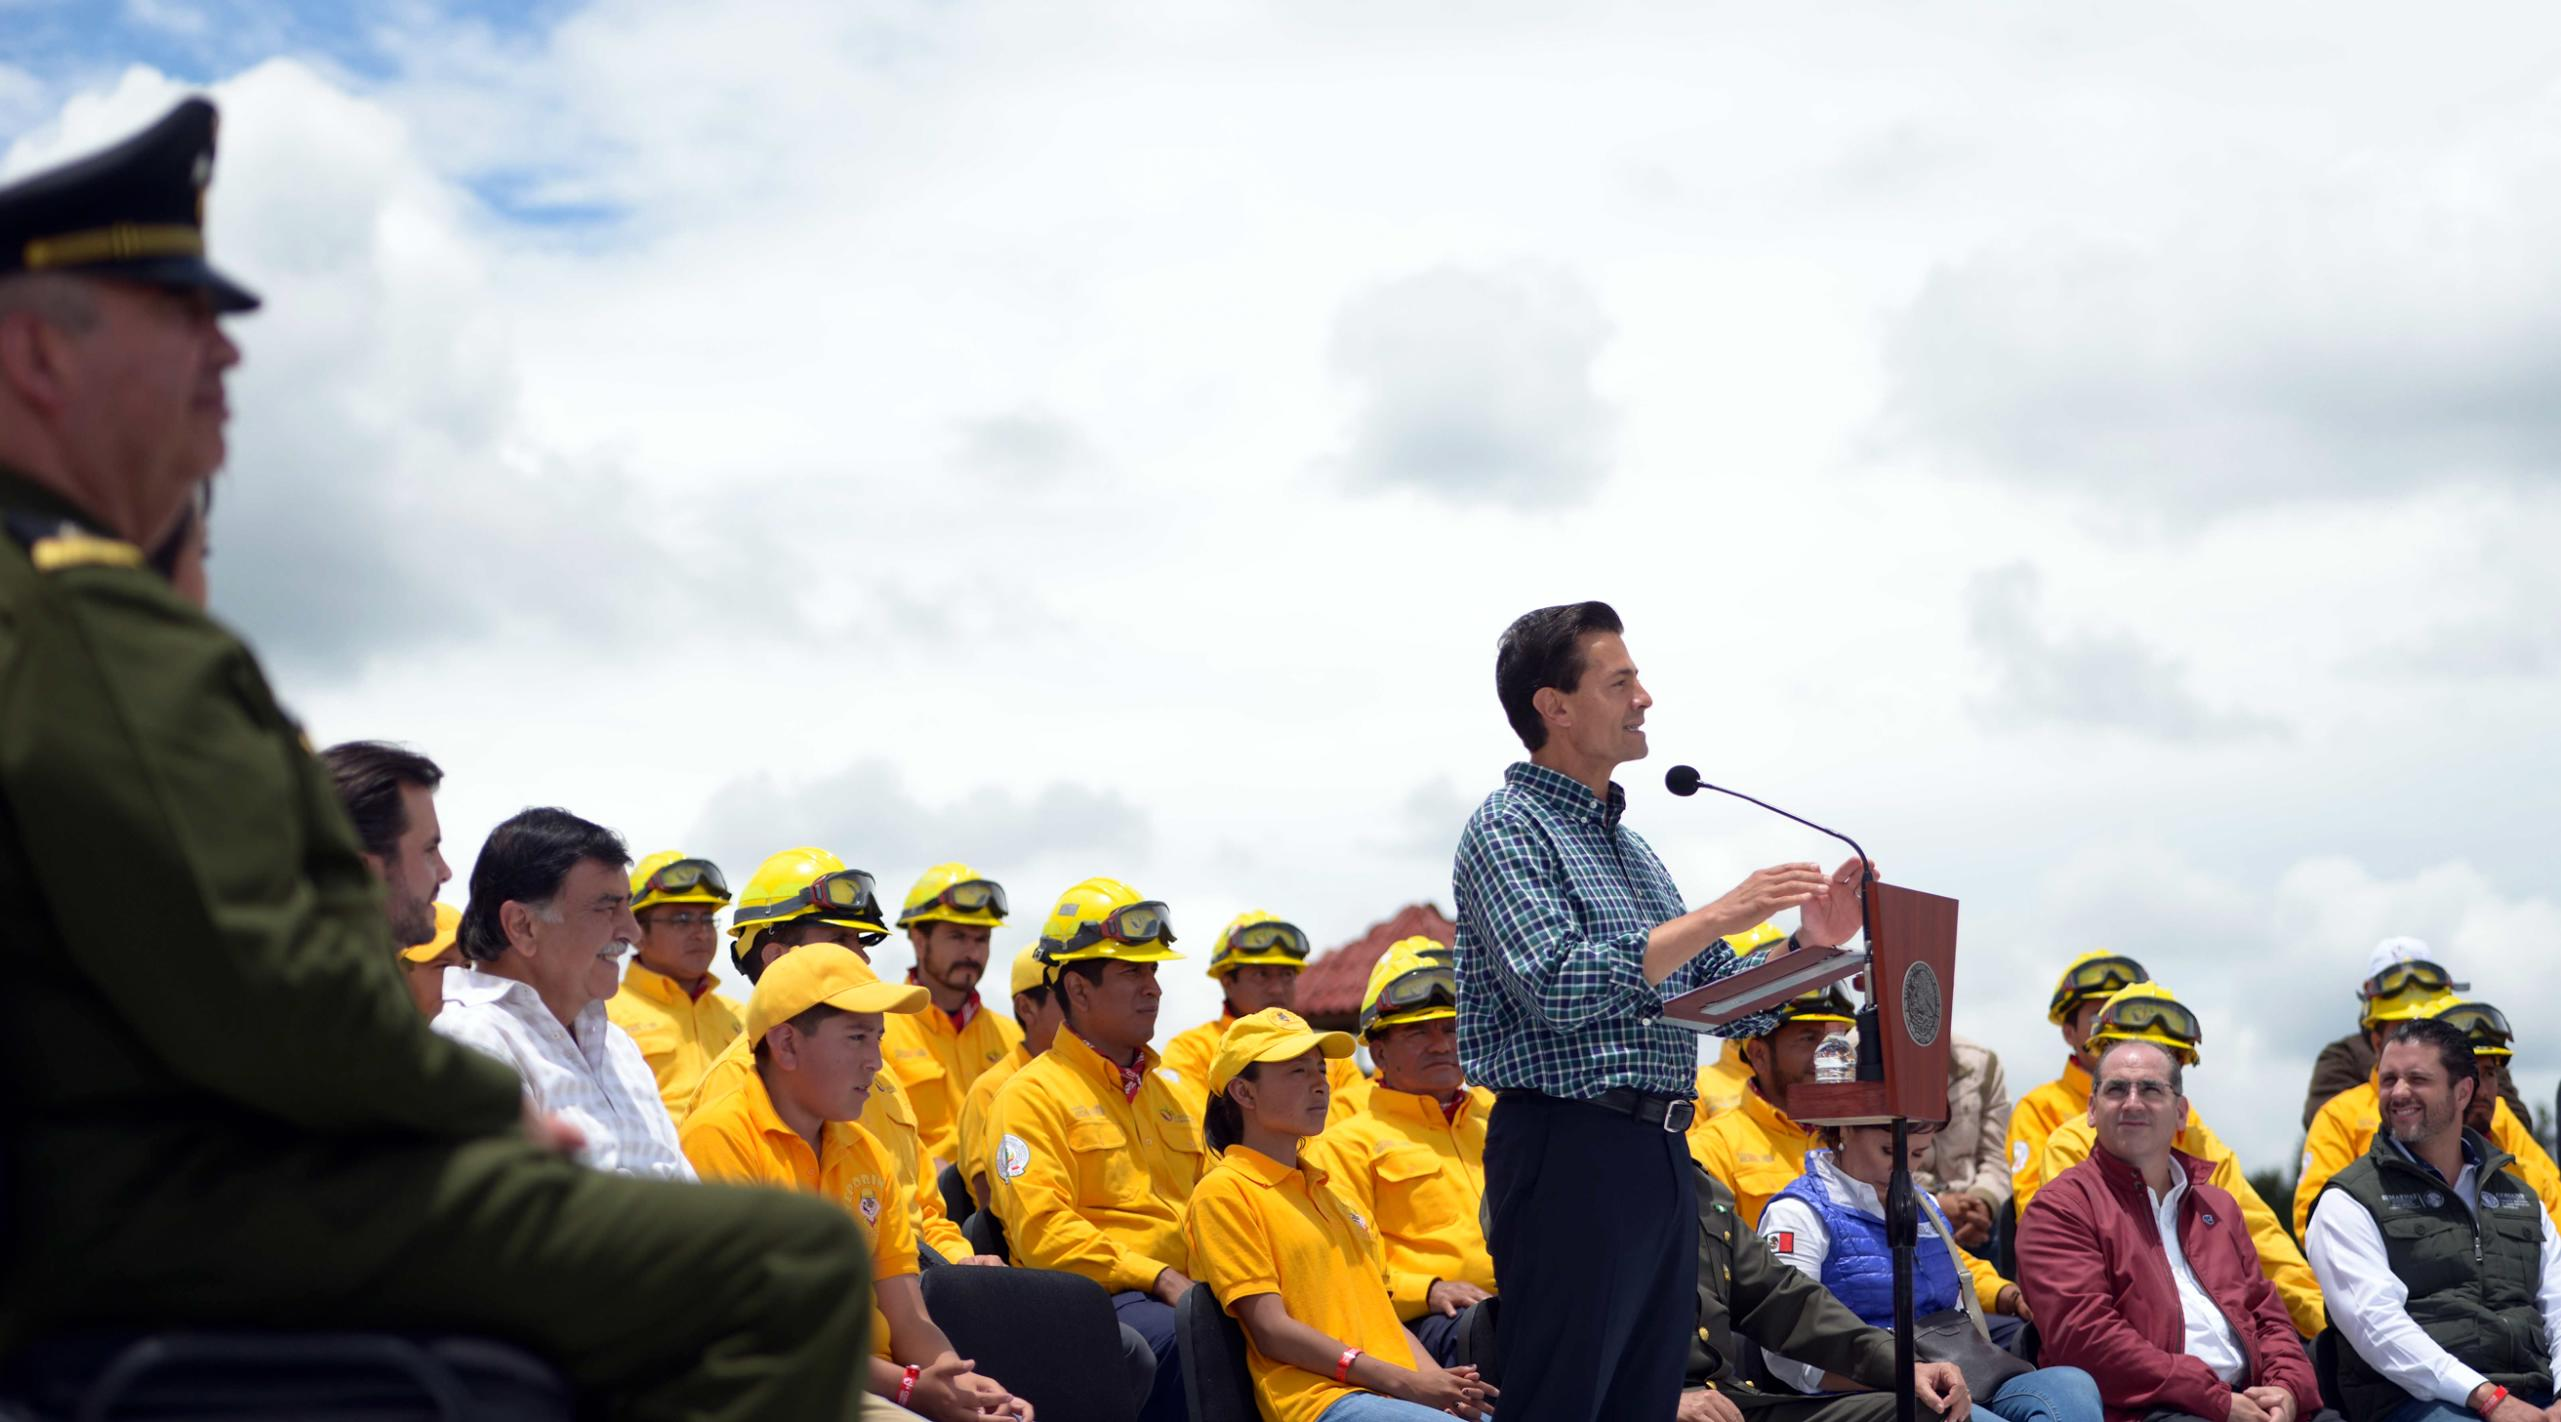 """""""We have met nearly 60 percent of the target so far, through the reforestation of nearly 600,000 hectares"""". EPN"""